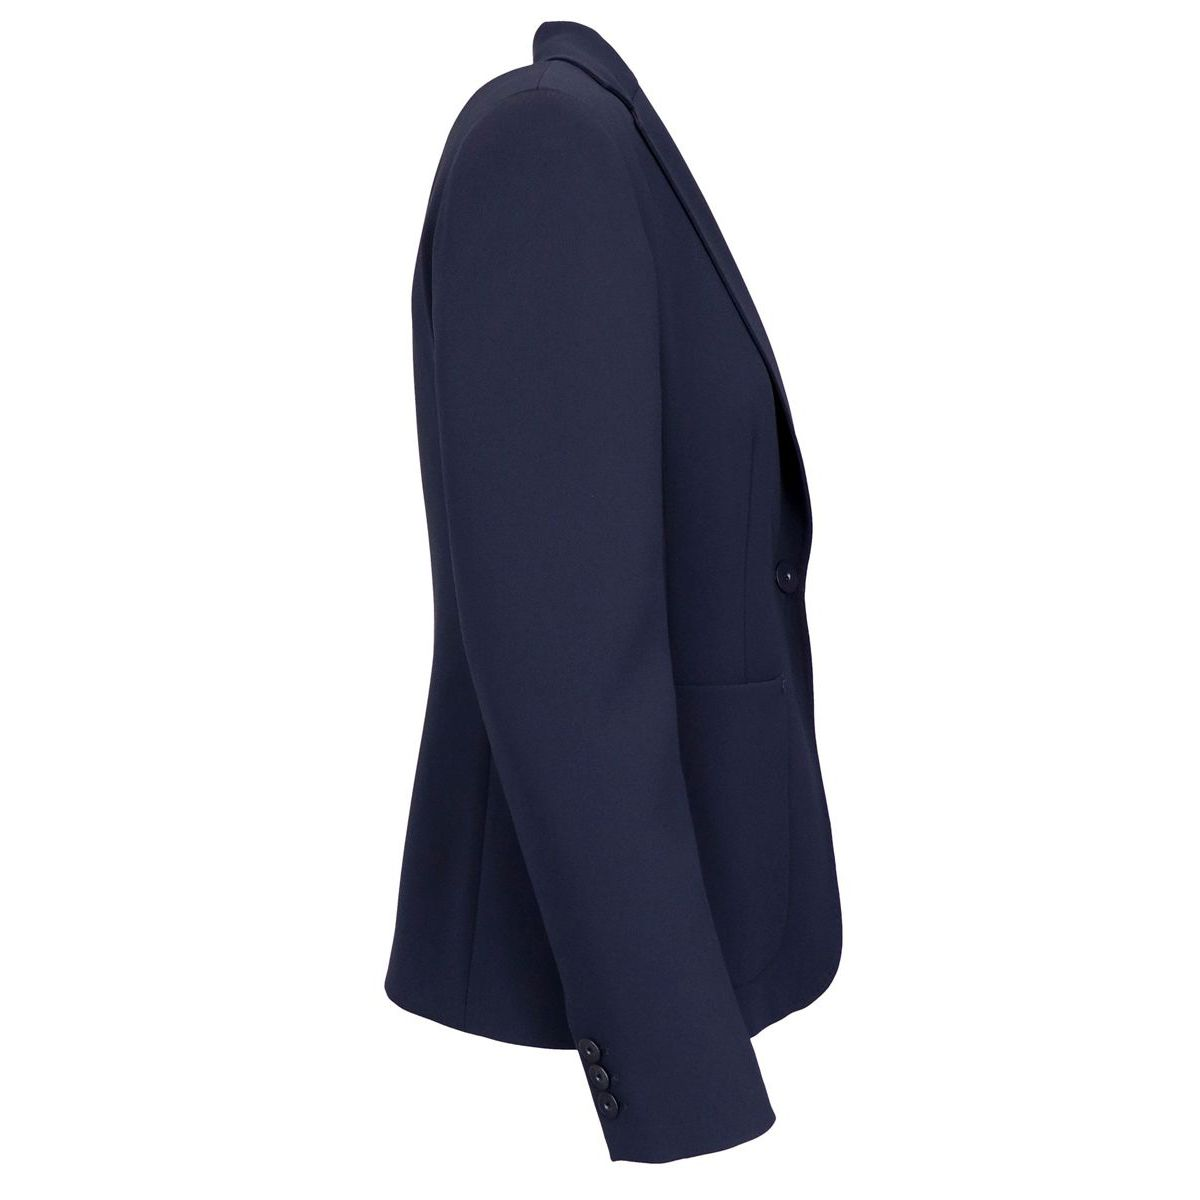 VAND crepe jacket with patch pocket Blue Max Mara